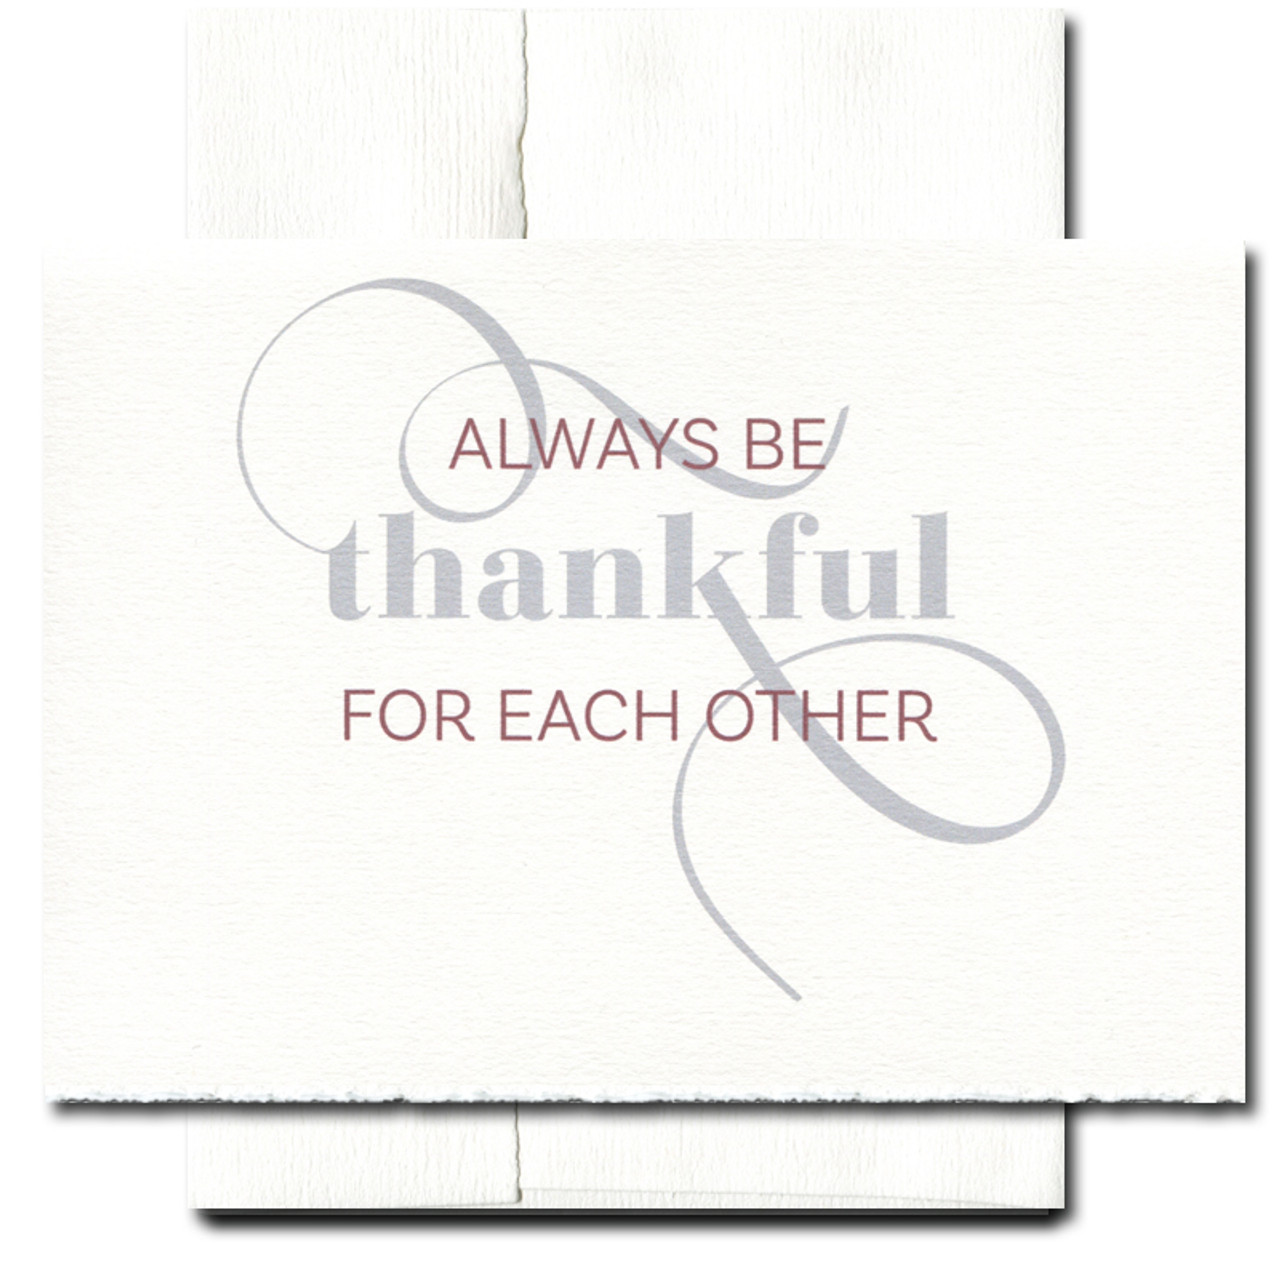 Cover of Thanksgiving Card reads: Always be thankful for each other